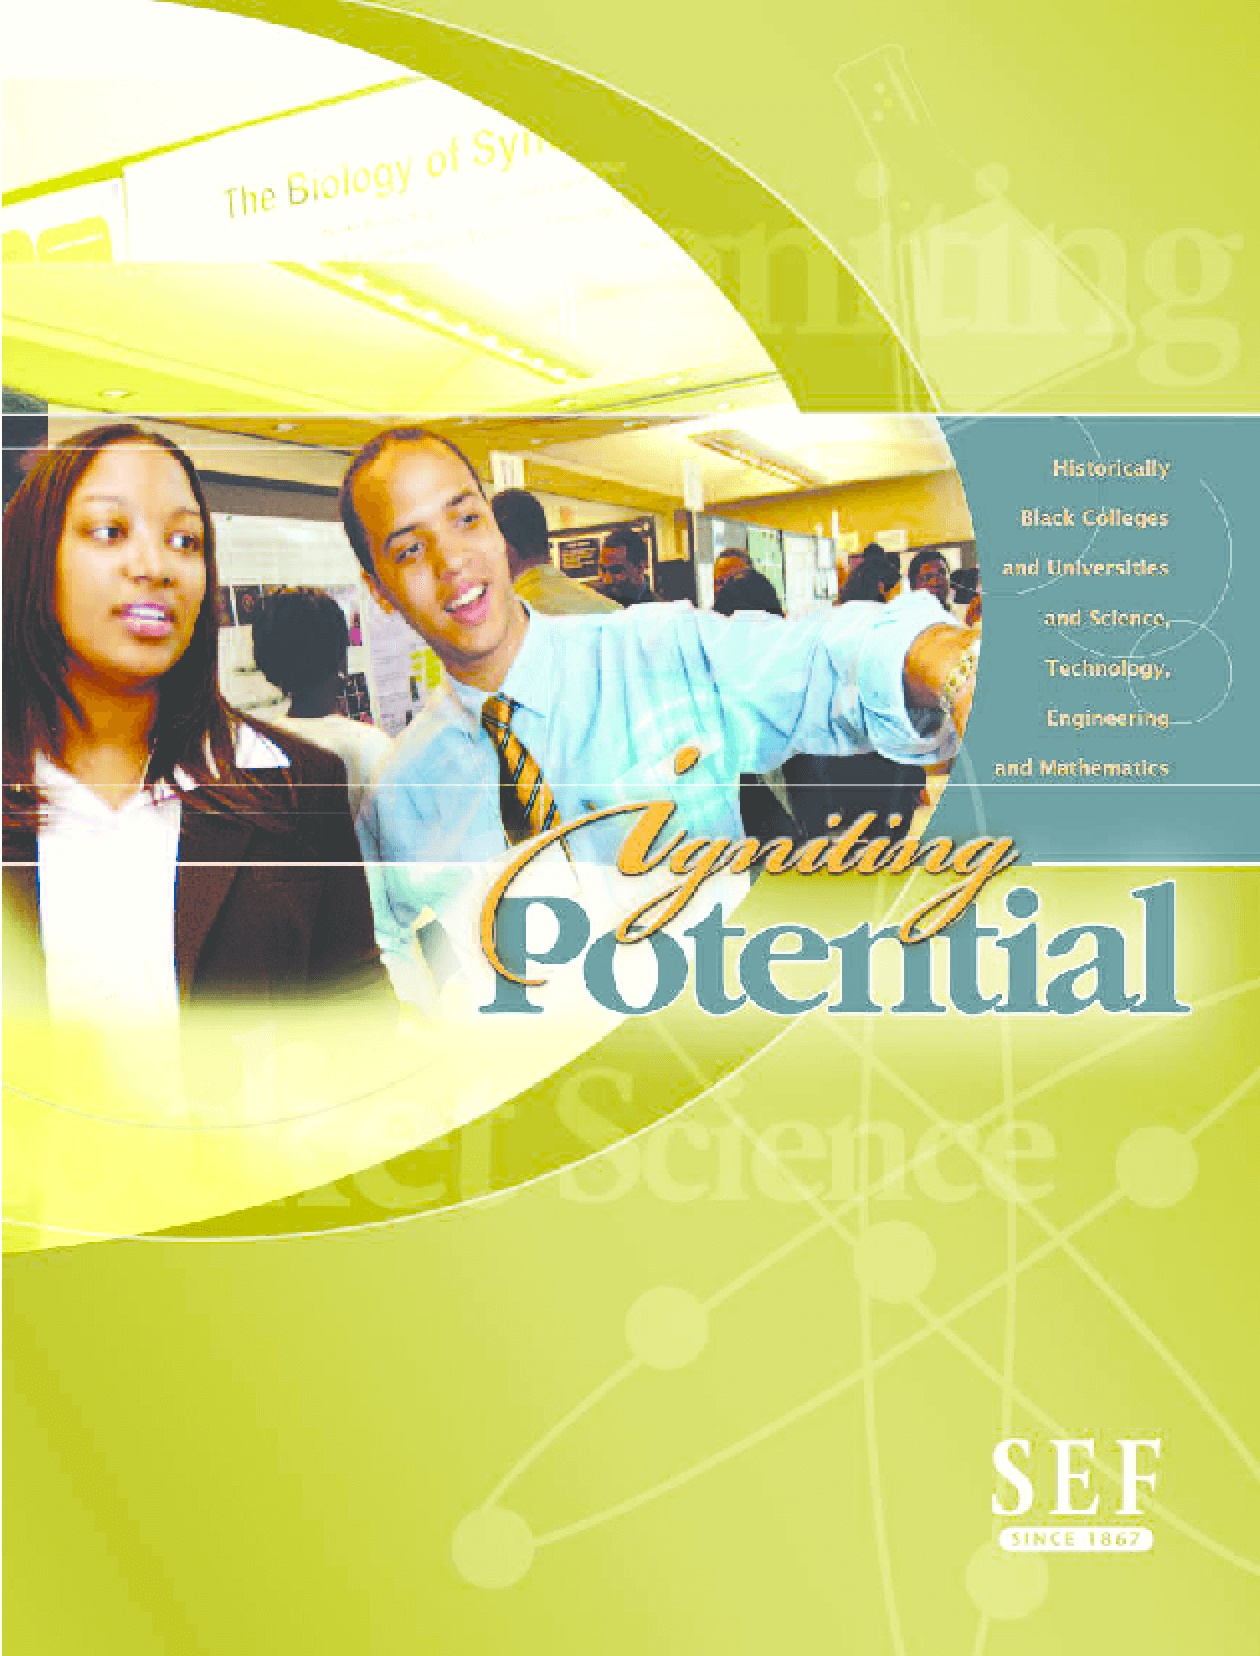 Igniting Potential: Historically Black Colleges and Universities and Science, Technology, Engineering and Mathematics